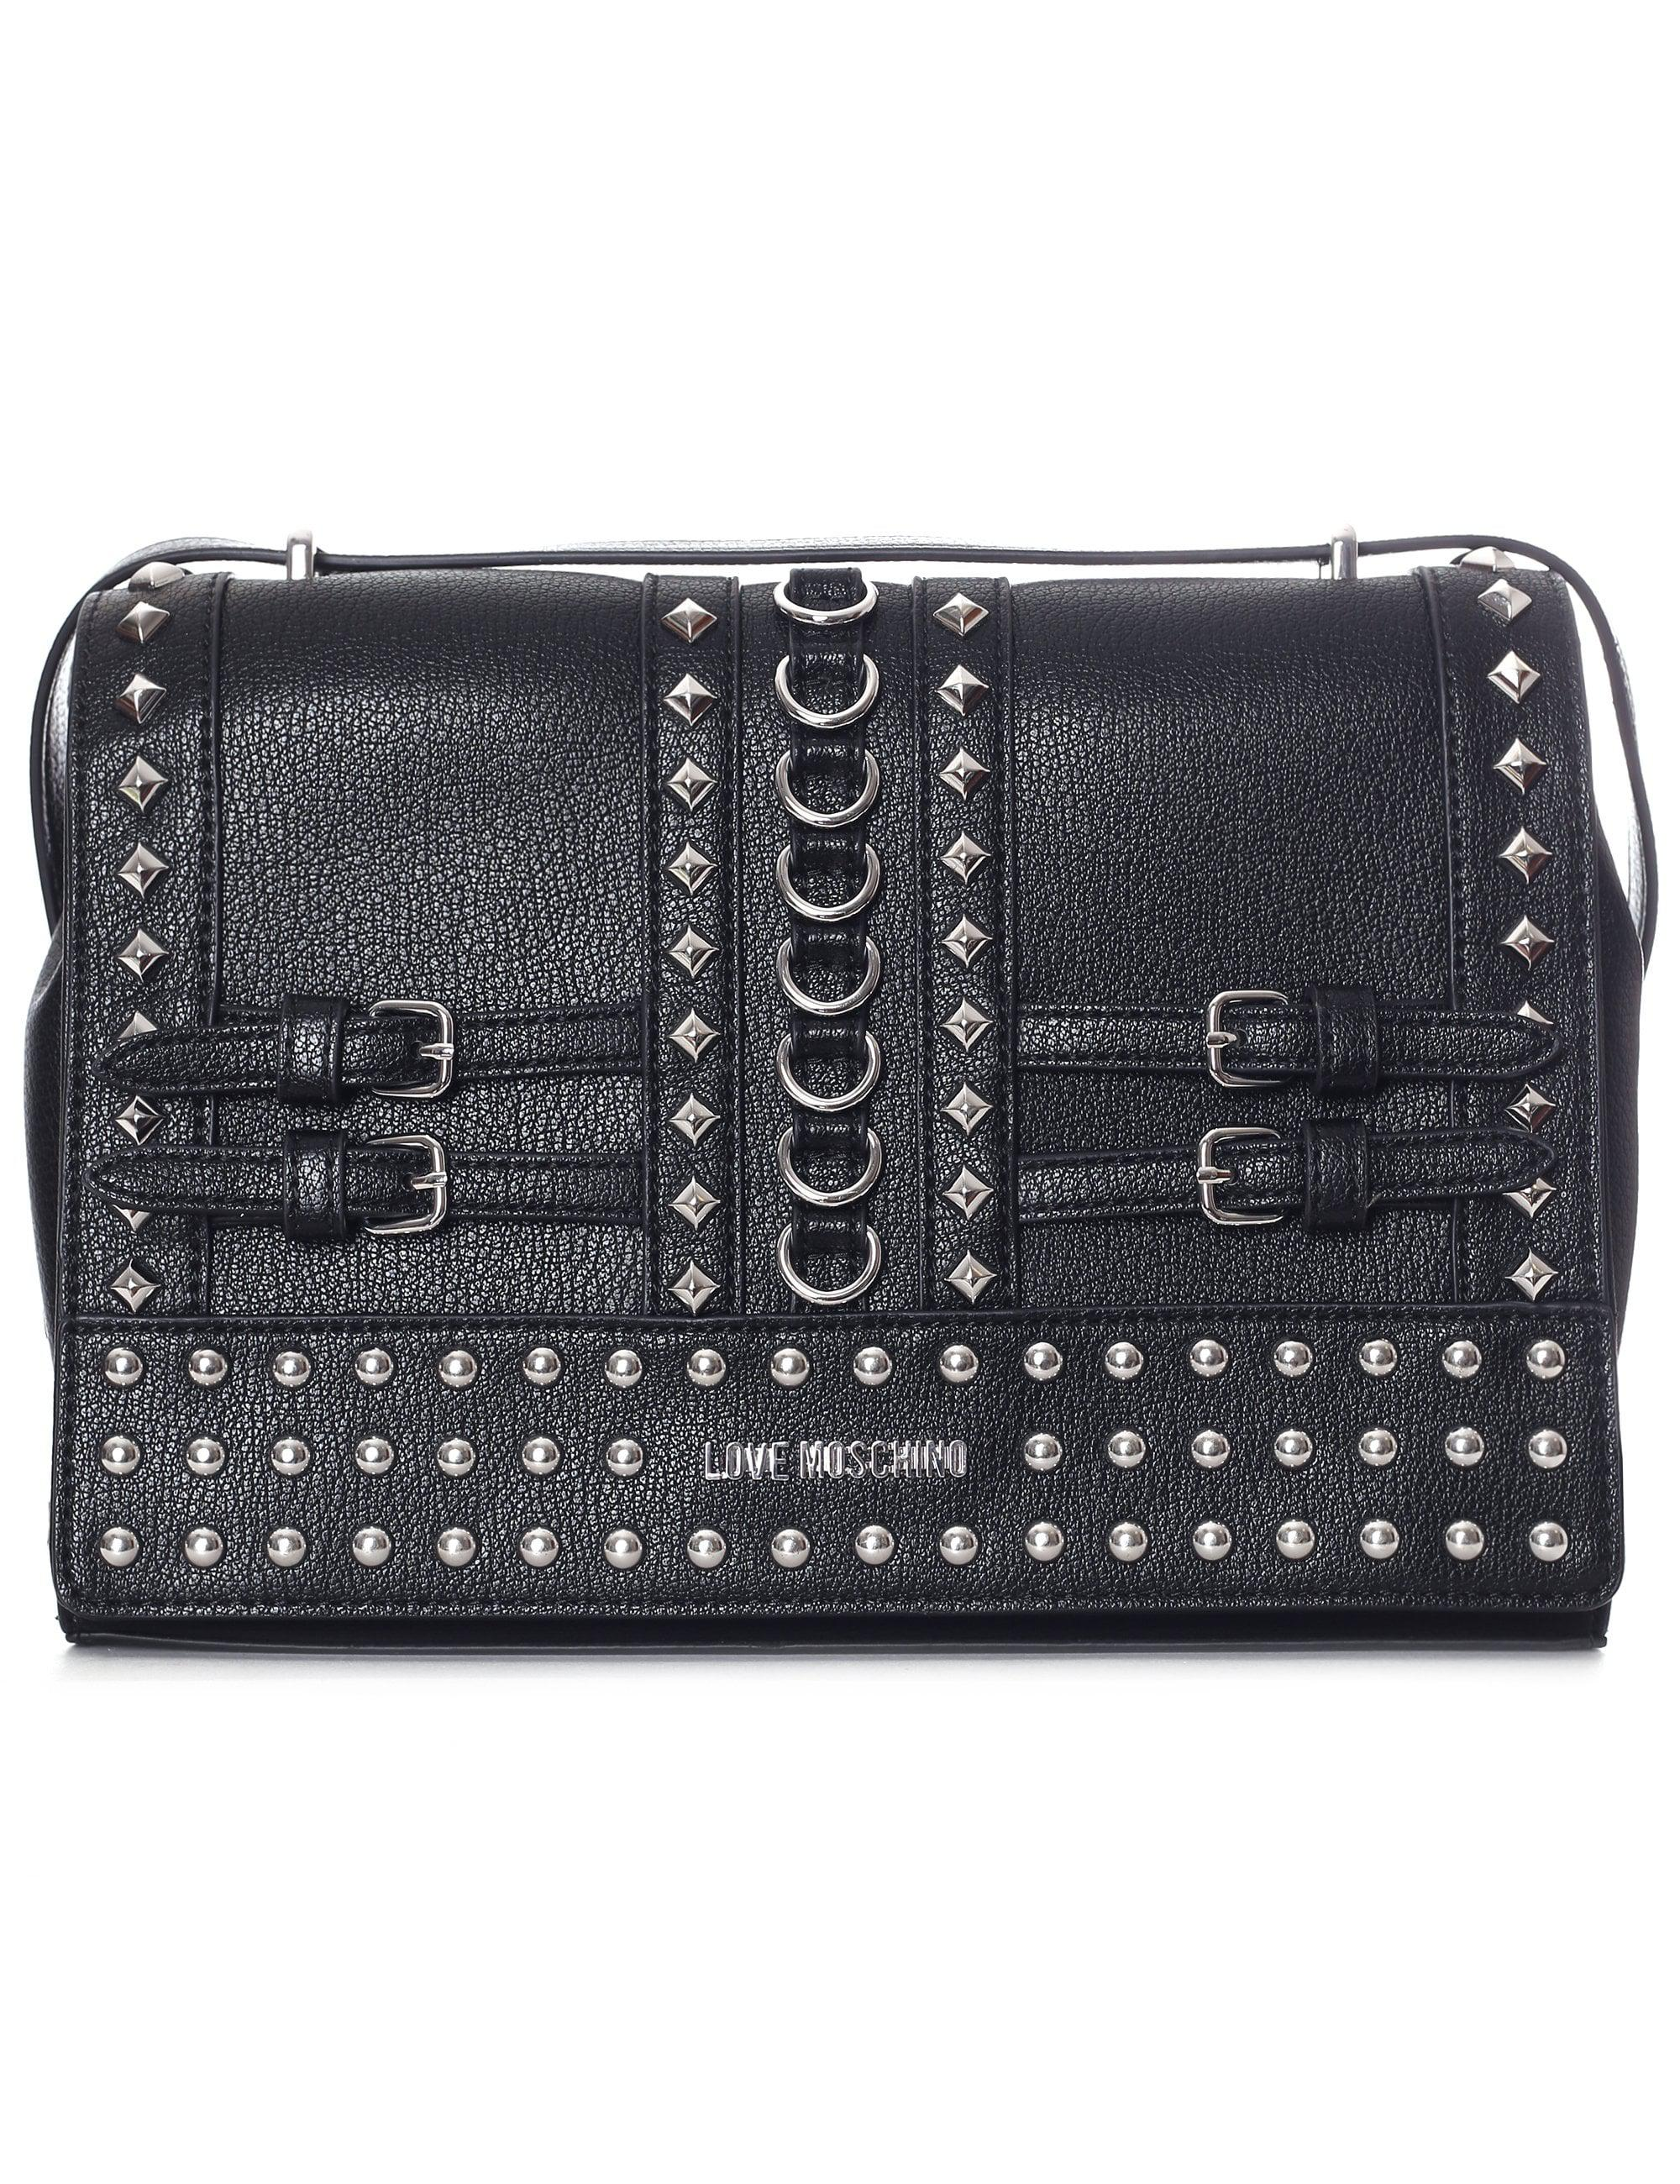 2e4be80985b Love Moschino Studded Shoulder Bag in Black - Lyst